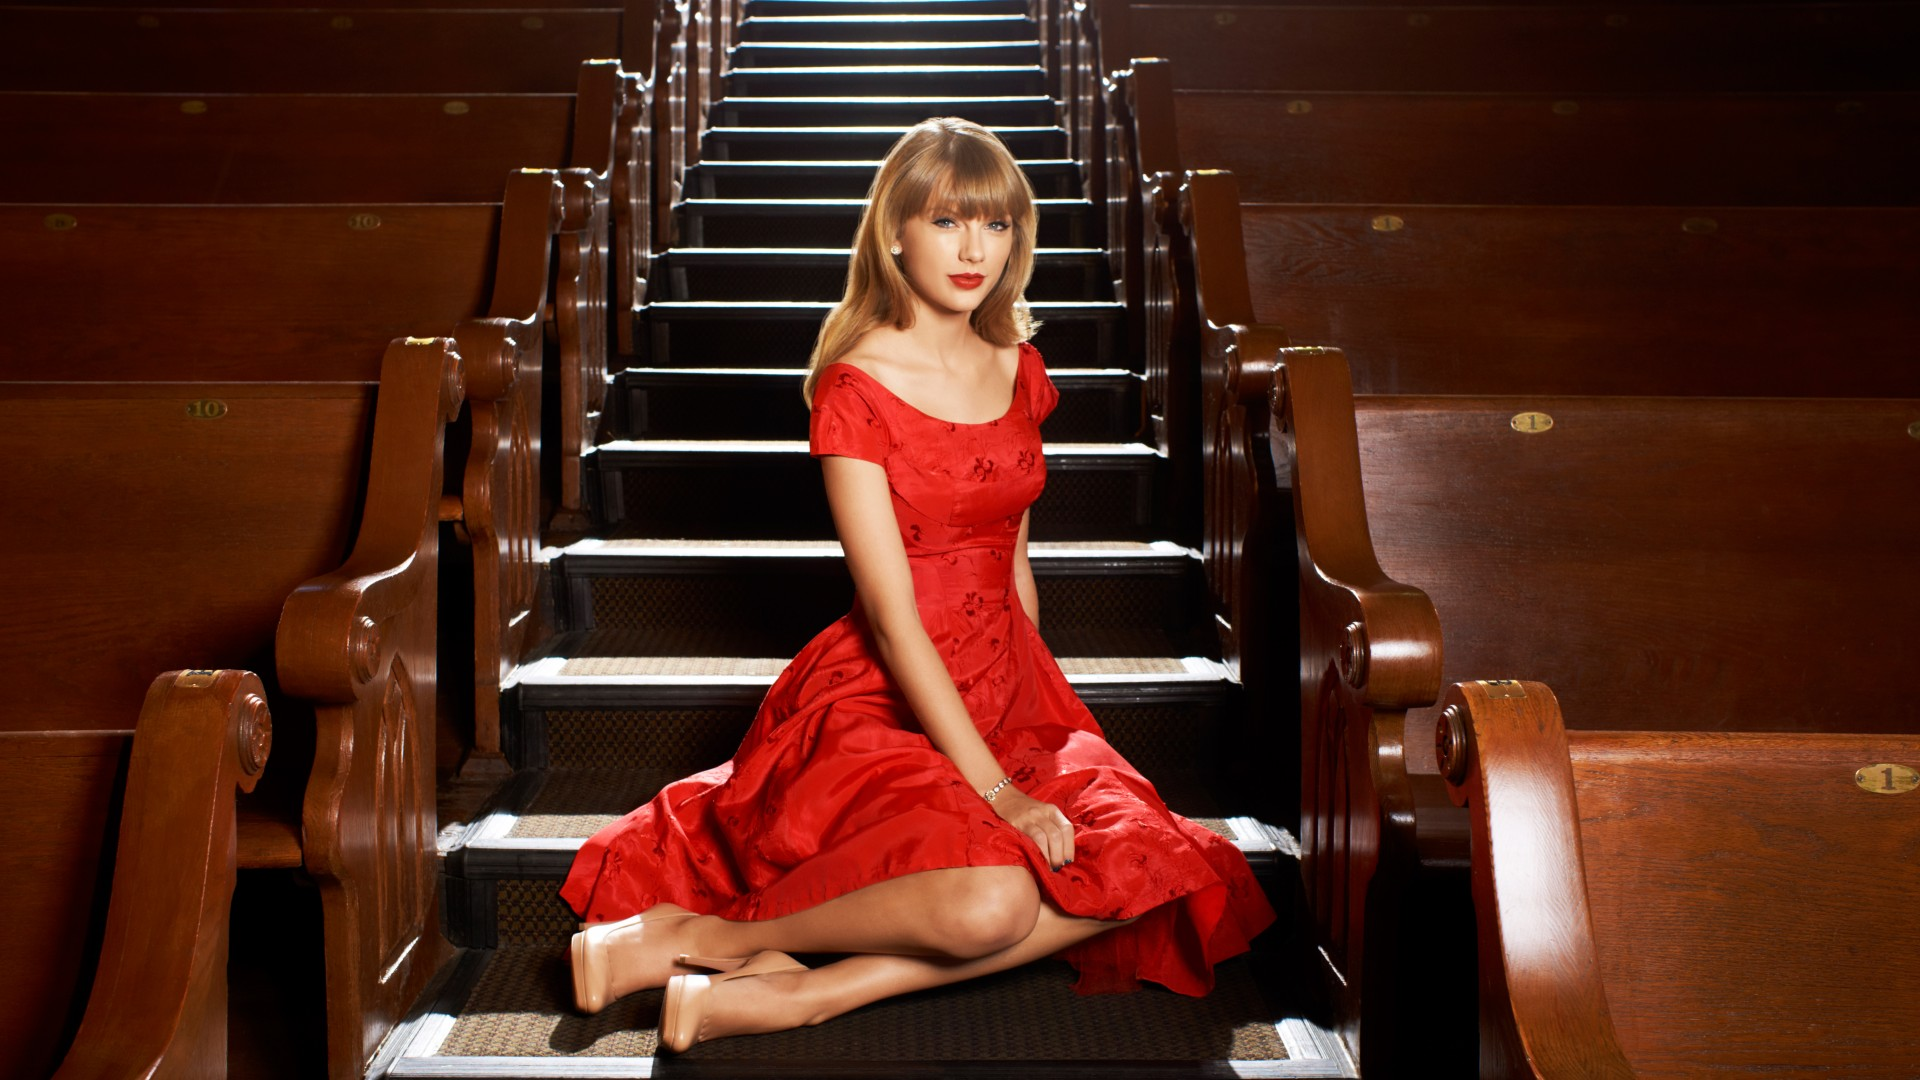 taylor,frock,clip,cherry,groom,celebrities,fast,taylor swift,sceloporus occidentalis,swift,in,fleet,dress,garnish,curry,red,coiffure